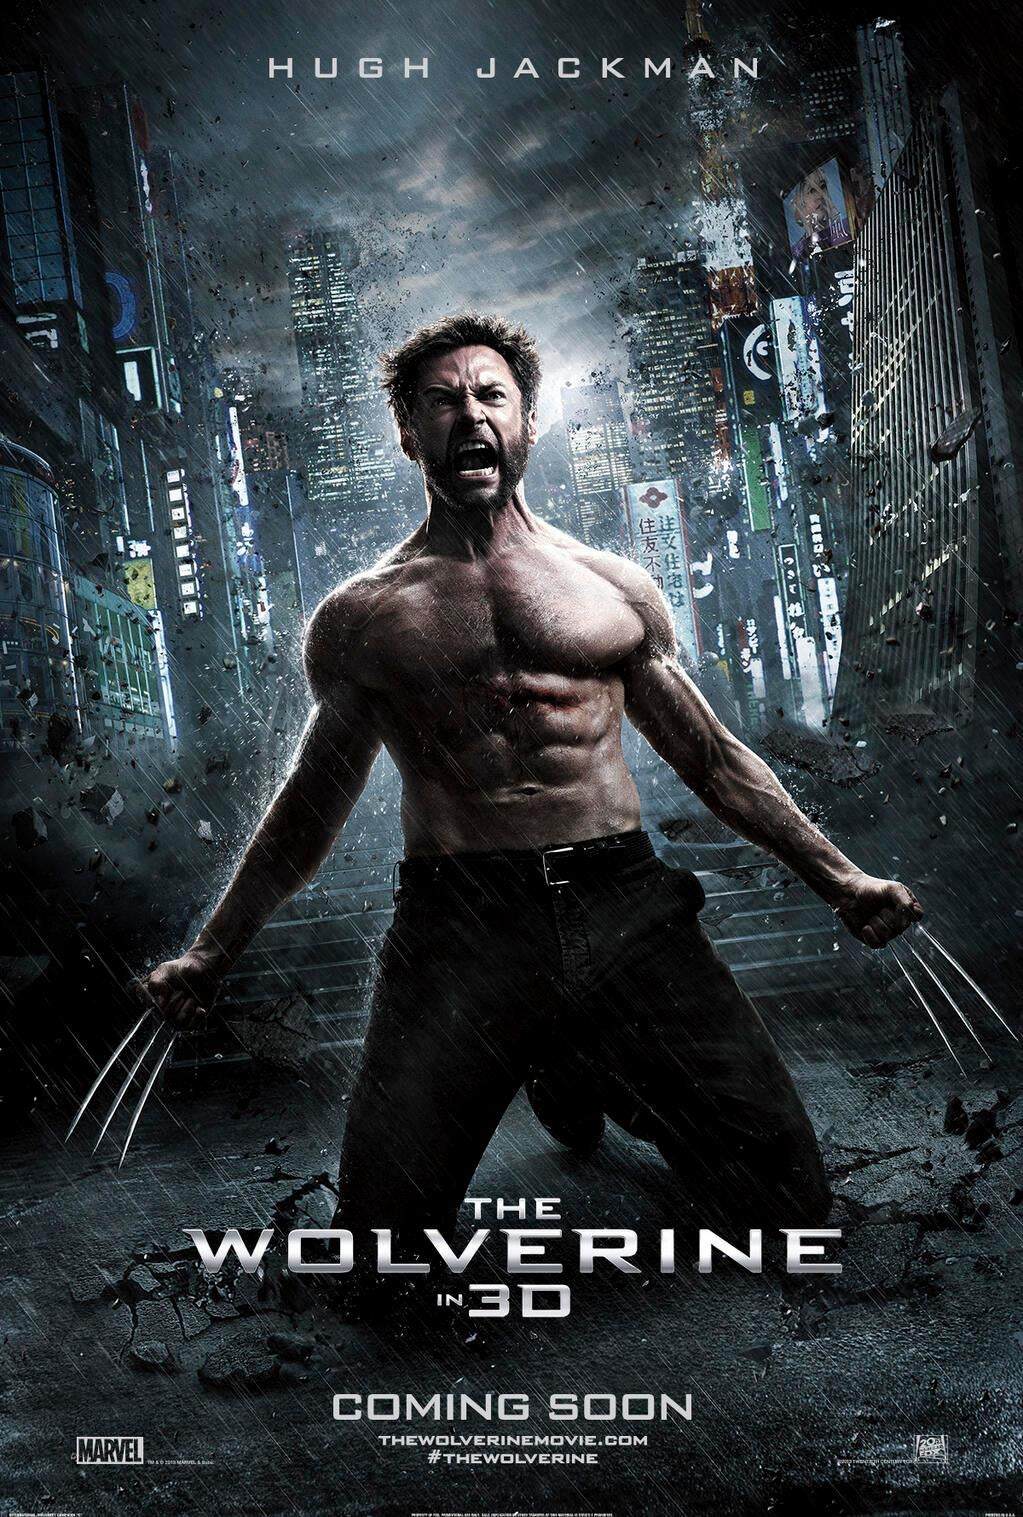 http://comicbook.com/wp-content/uploads/2013/03/the-wolverine-poster.jpg